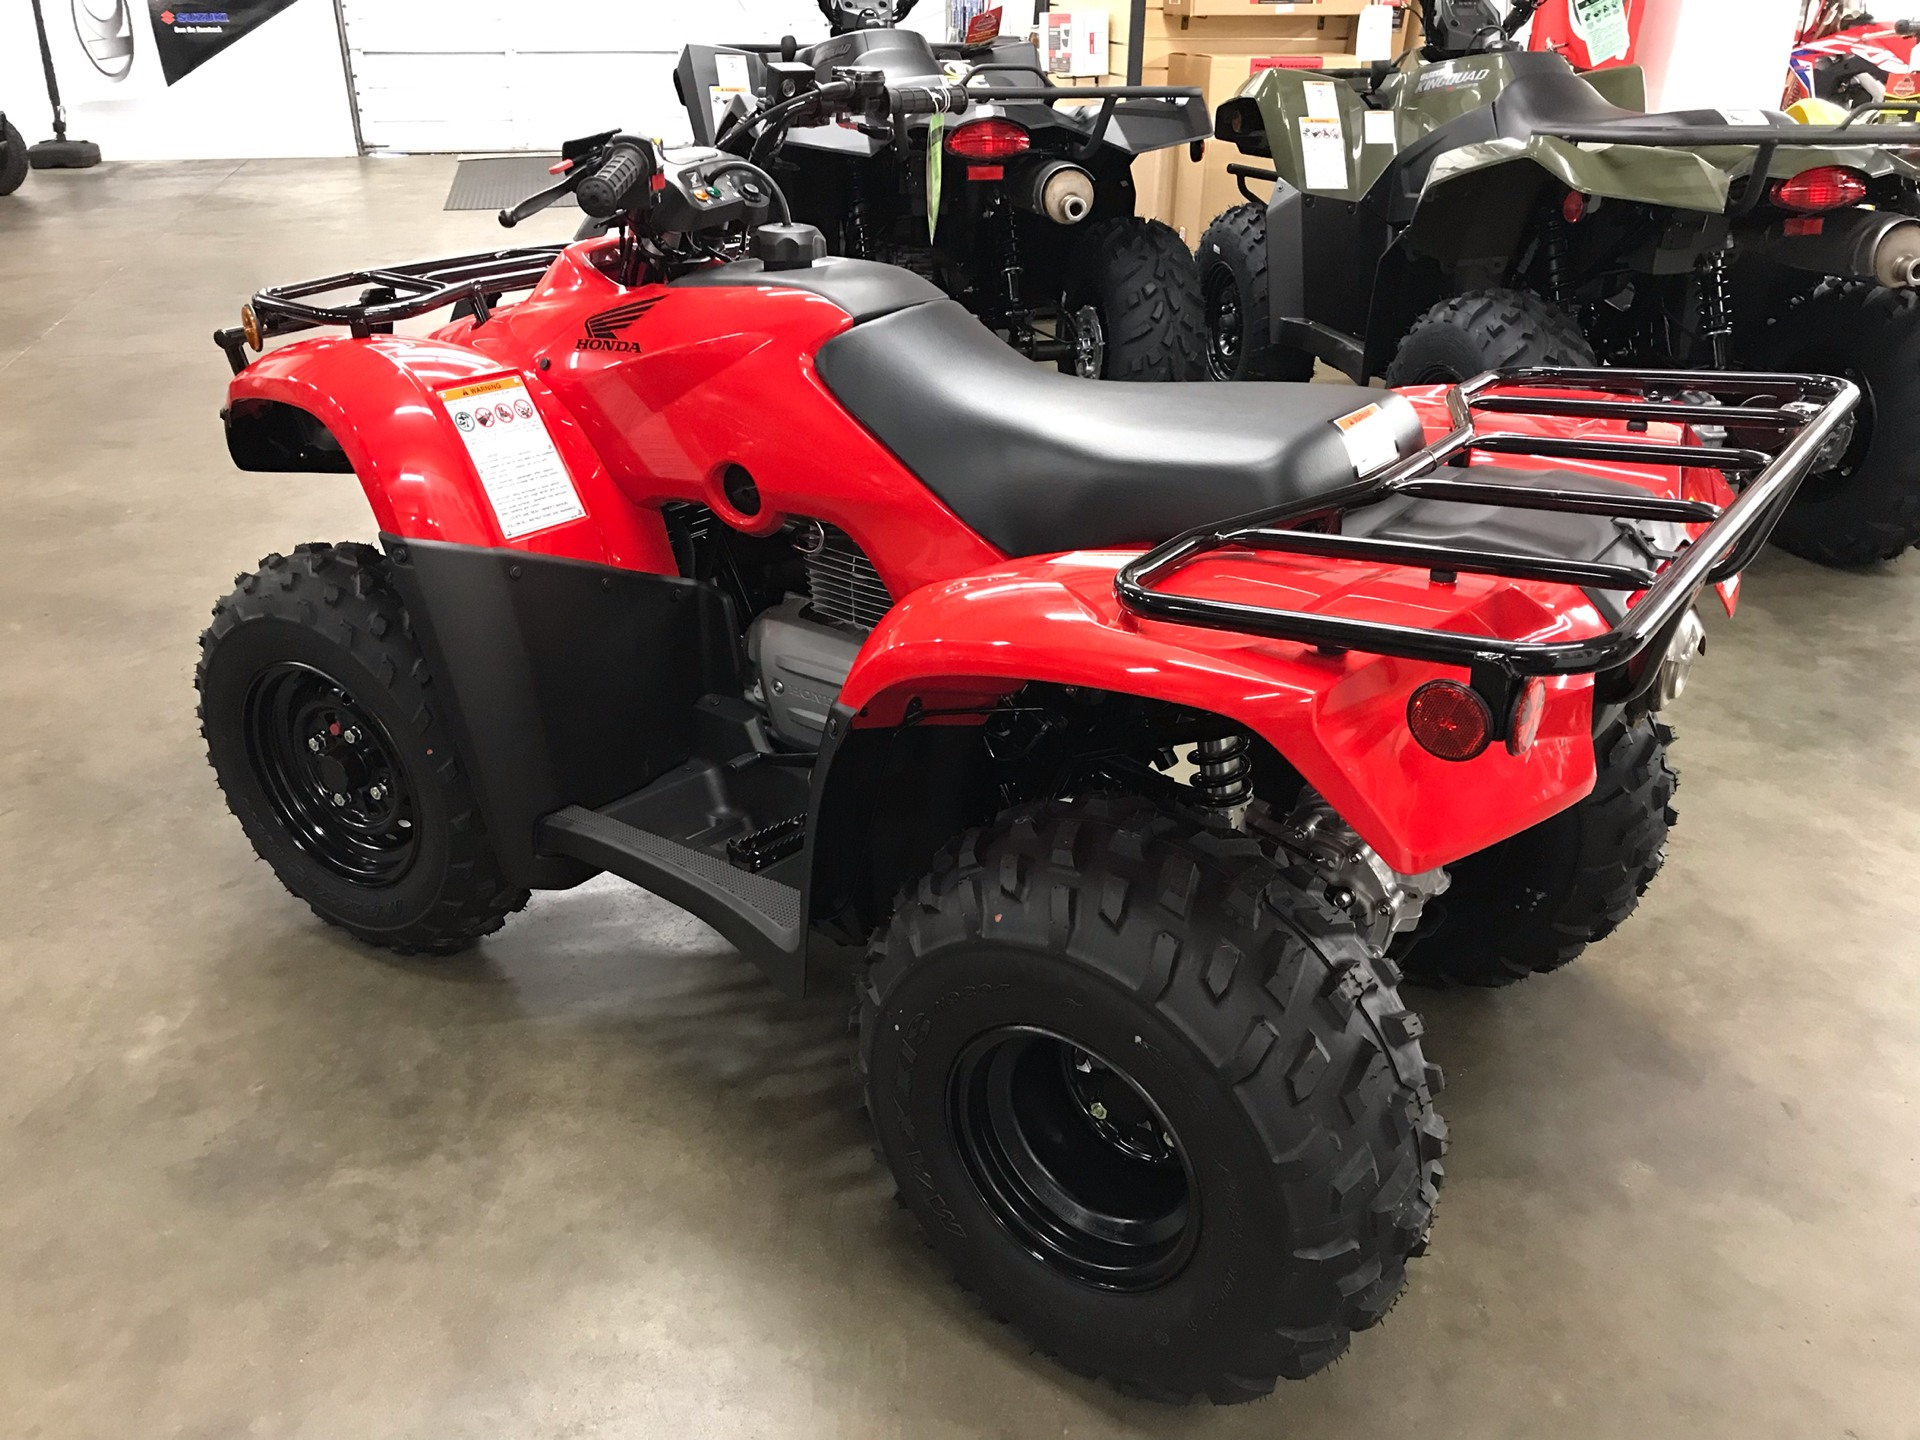 2019 Honda FourTrax Recon in Sanford, North Carolina - Photo 3